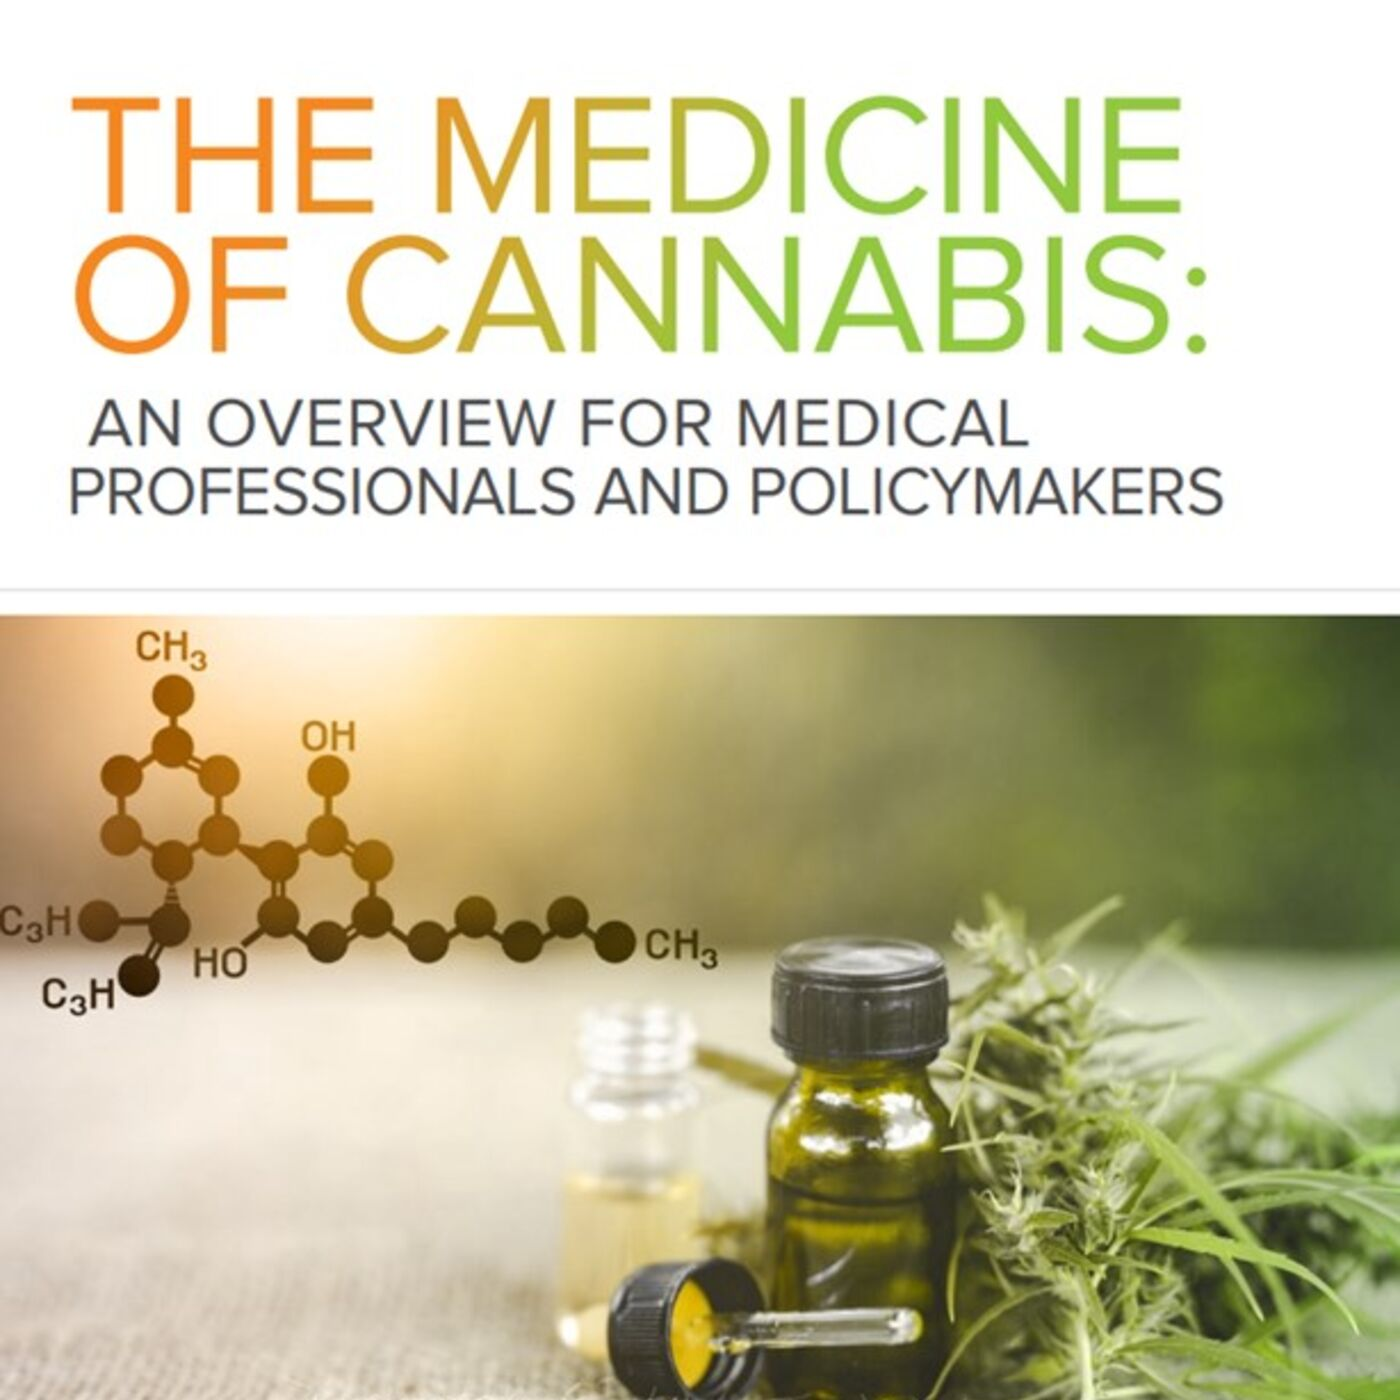 The Medicine of Cannabis: An Overview for Medical Professionals and Policymakers, with Dr. Lynn Parodneck (S2, E21))